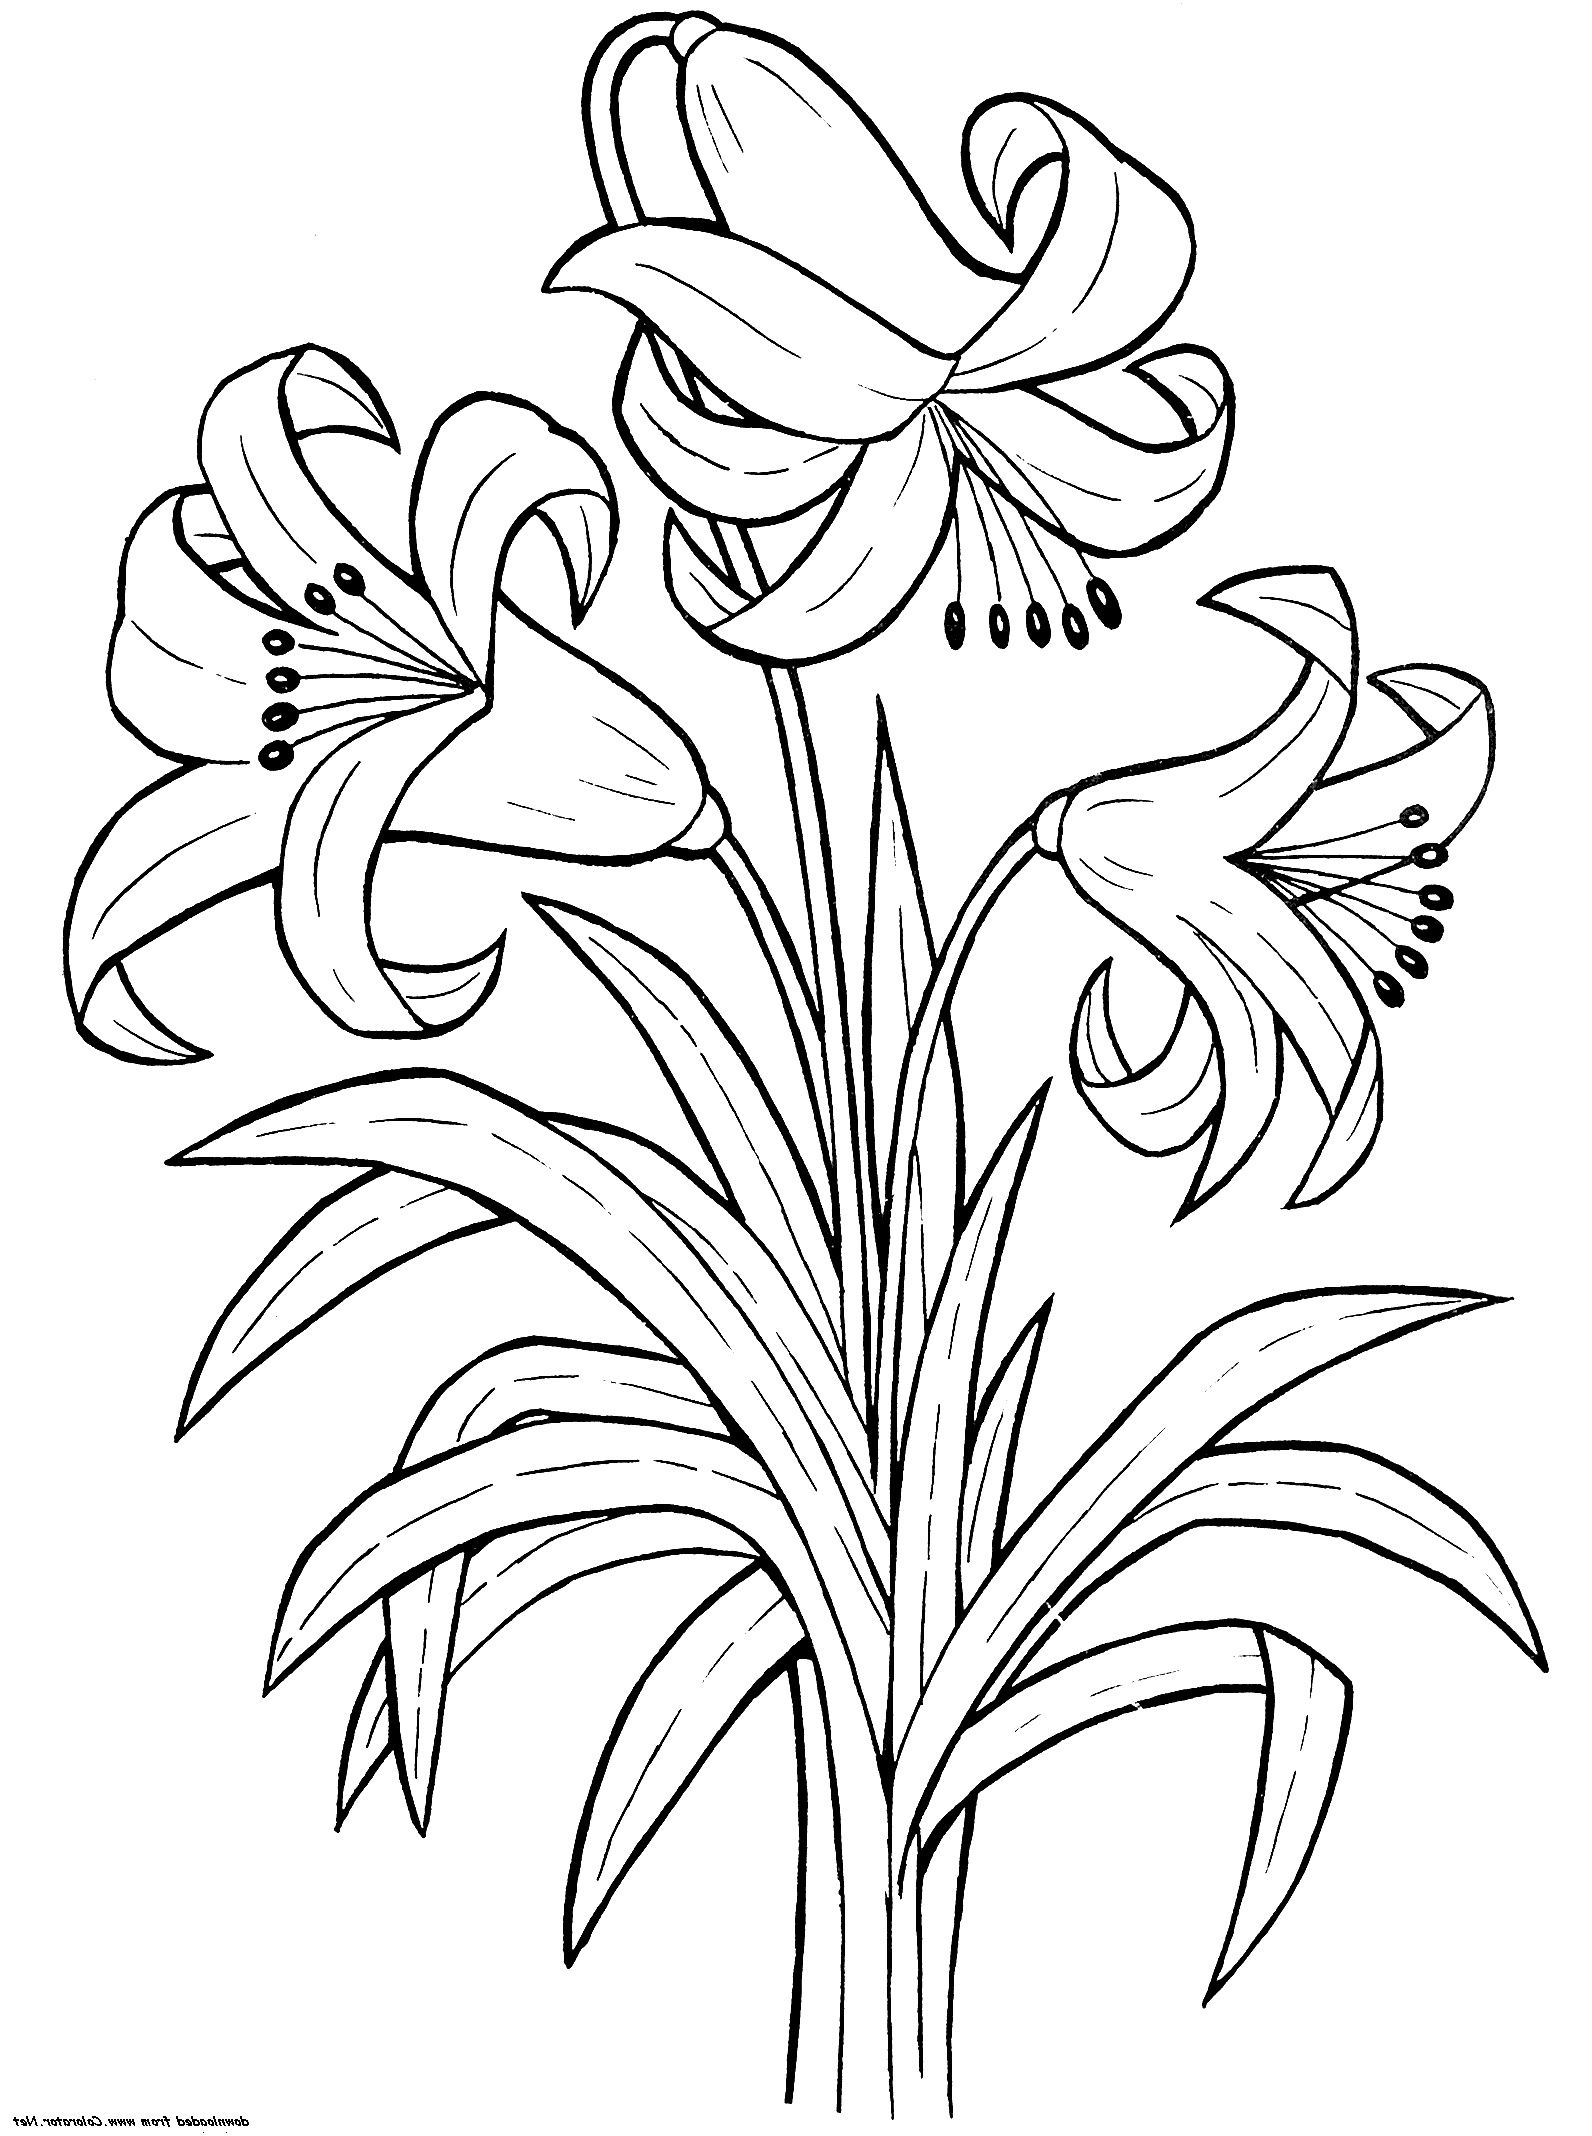 Printable Lily Flower Coloring Pages  K25 Worksheets  Printable